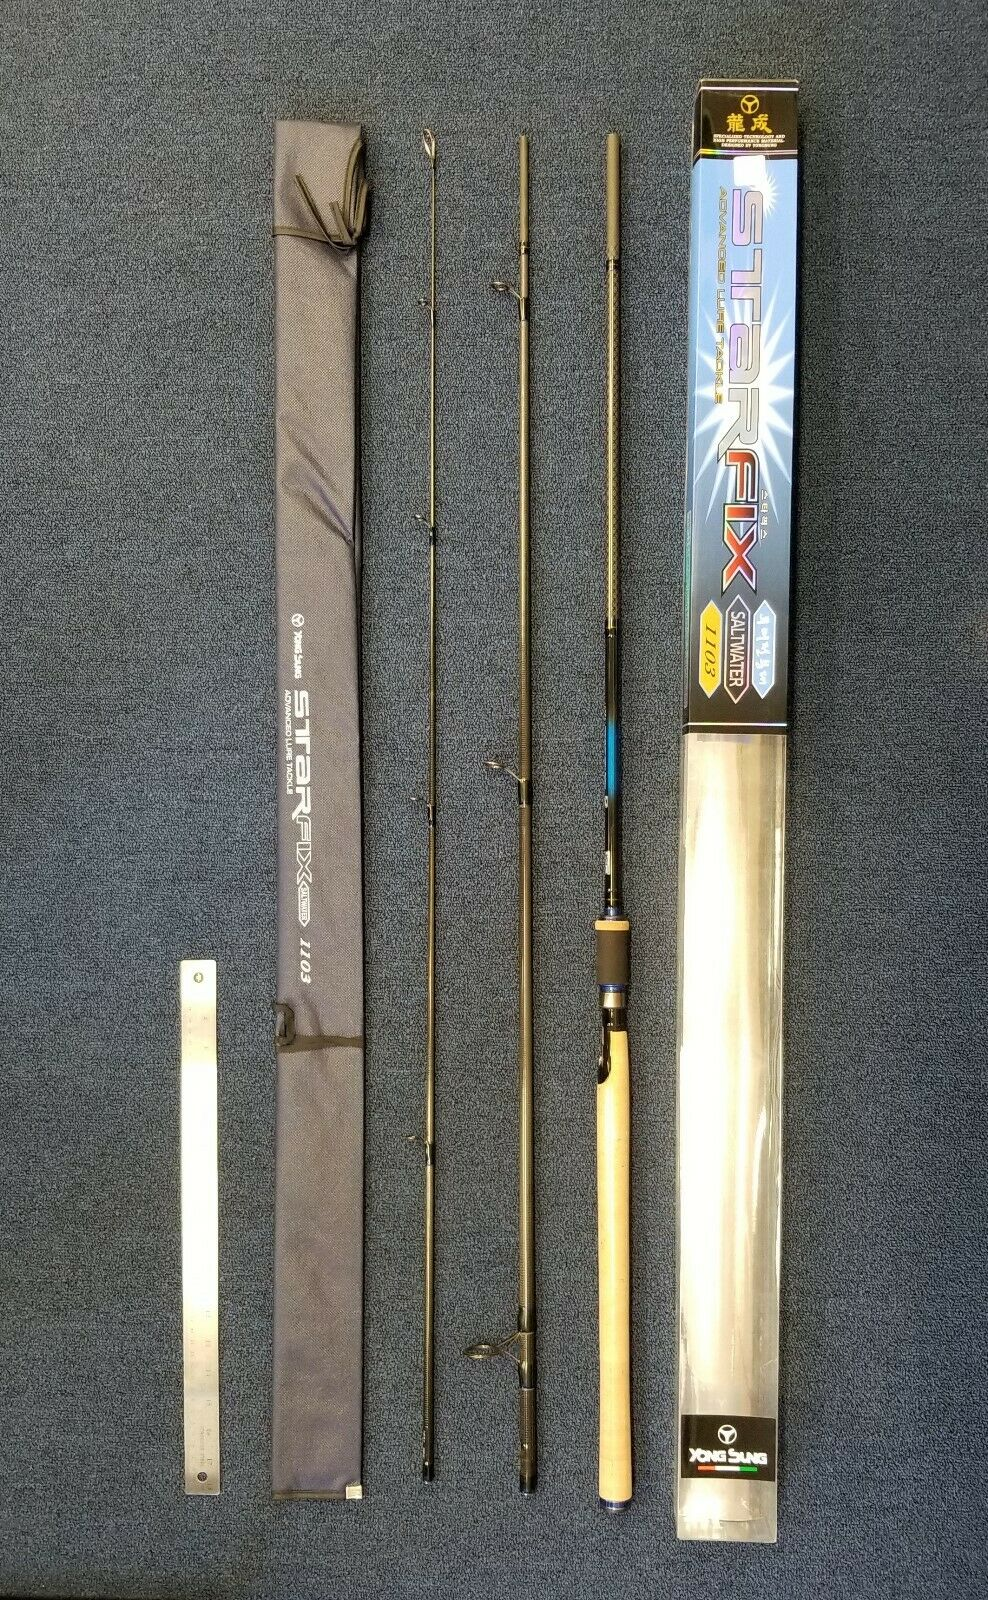 YONG SUNG KOREA 11' trois Carbone-Graphite Saltwater Fishing Rod